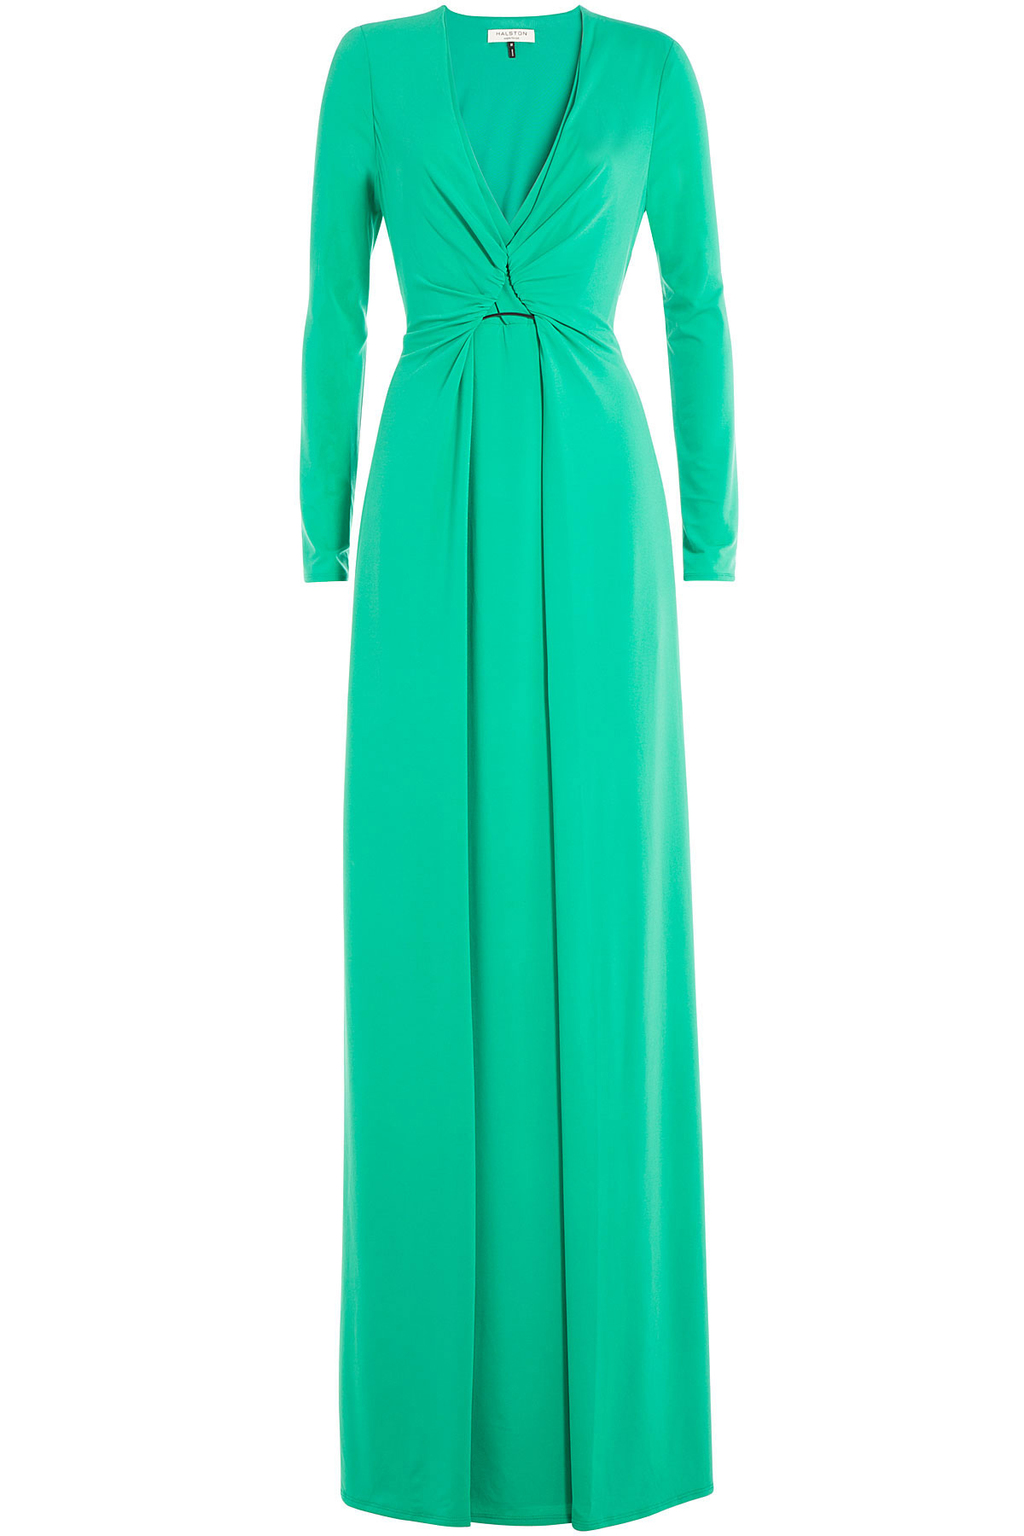 Floor Length Gown - style: ballgown; neckline: low v-neck; pattern: plain; predominant colour: mint green; length: floor length; fit: fitted at waist & bust; fibres: polyester/polyamide - stretch; occasions: occasion; sleeve length: long sleeve; sleeve style: standard; pattern type: fabric; pattern size: standard; texture group: jersey - stretchy/drapey; season: s/s 2016; wardrobe: event